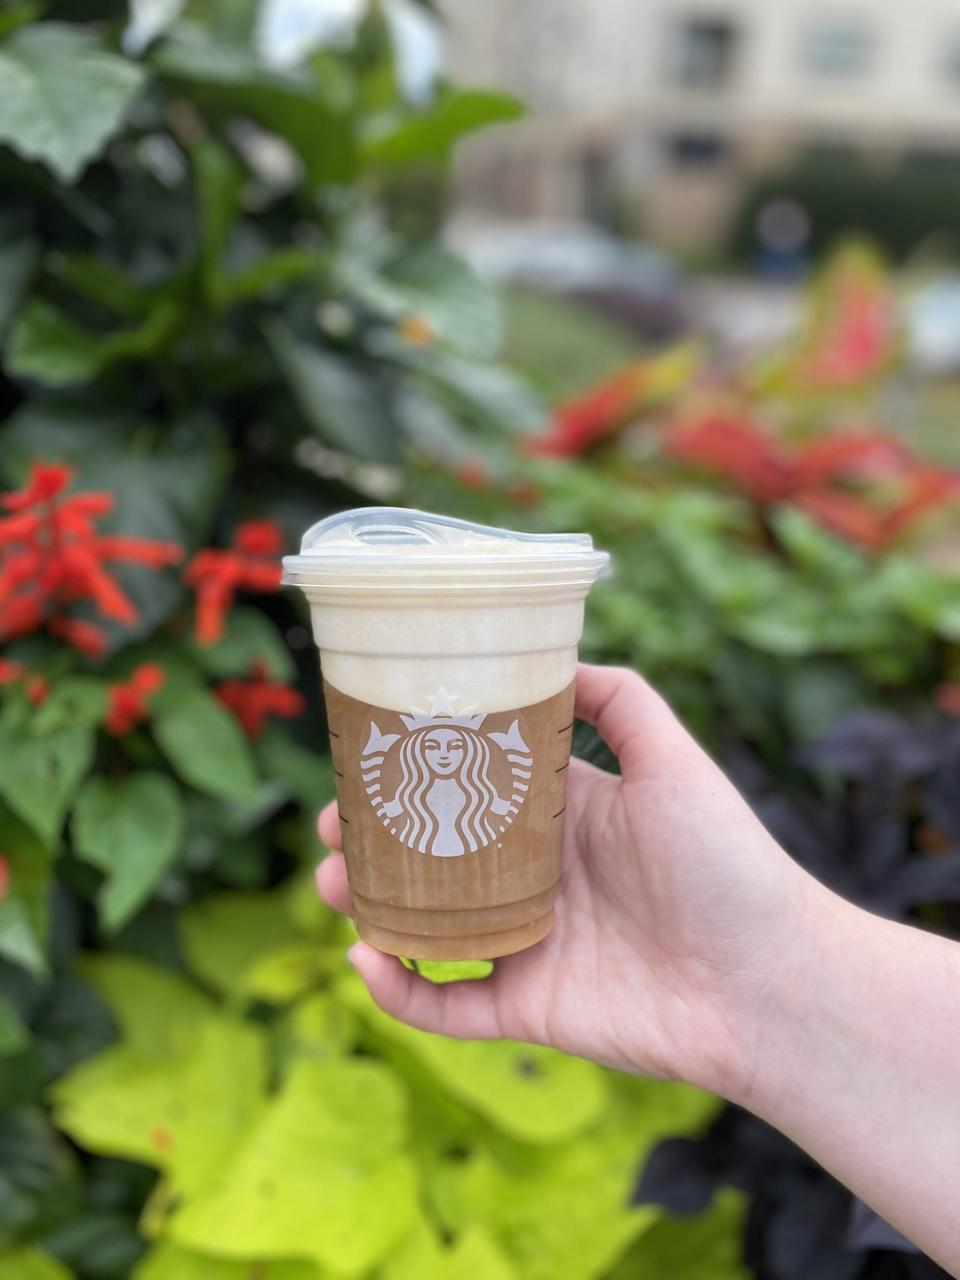 I Tried All of Starbucks's Nitro Cold Brews With Sweet ...